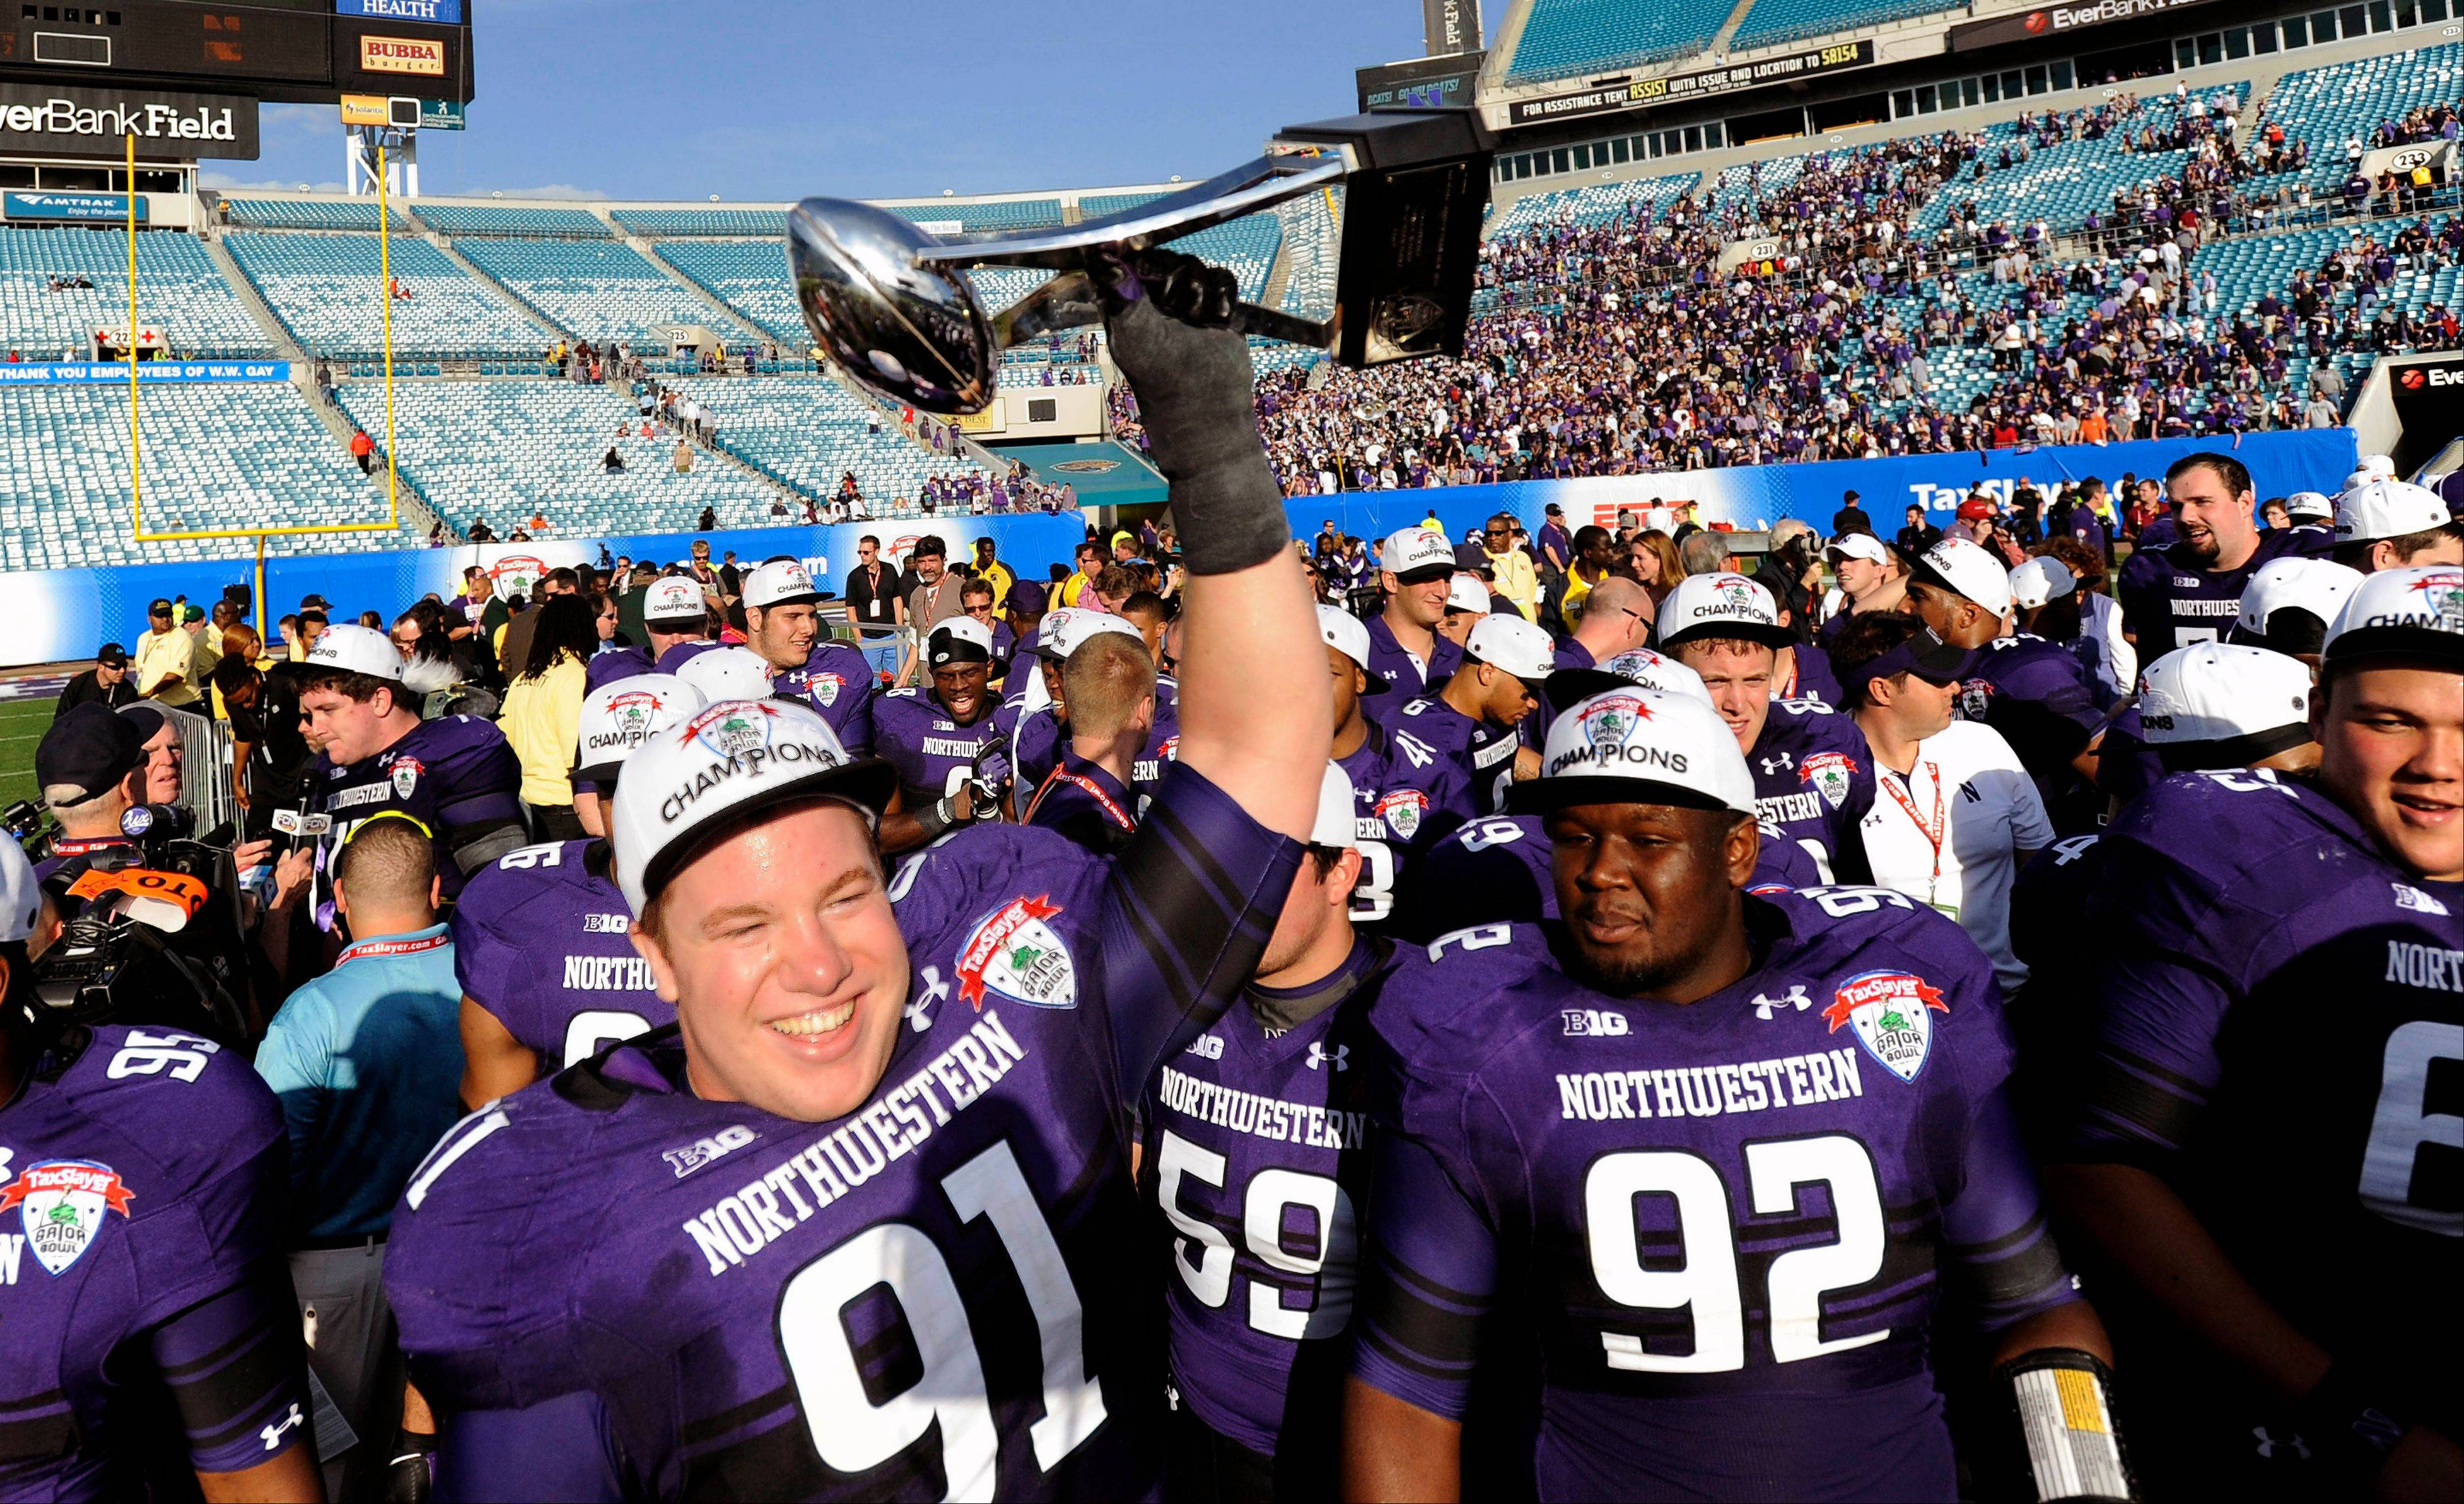 Defensive lineman Brian Arnfelt hoists the trophy after Northwestern's 34-20 win over Mississippi State in the Gator Bowl on Jan. 1 in Jacksonville, Fla. With five straight bowl seasons and that elusive victory in their pocket, the Wildcats believe even better days are coming.